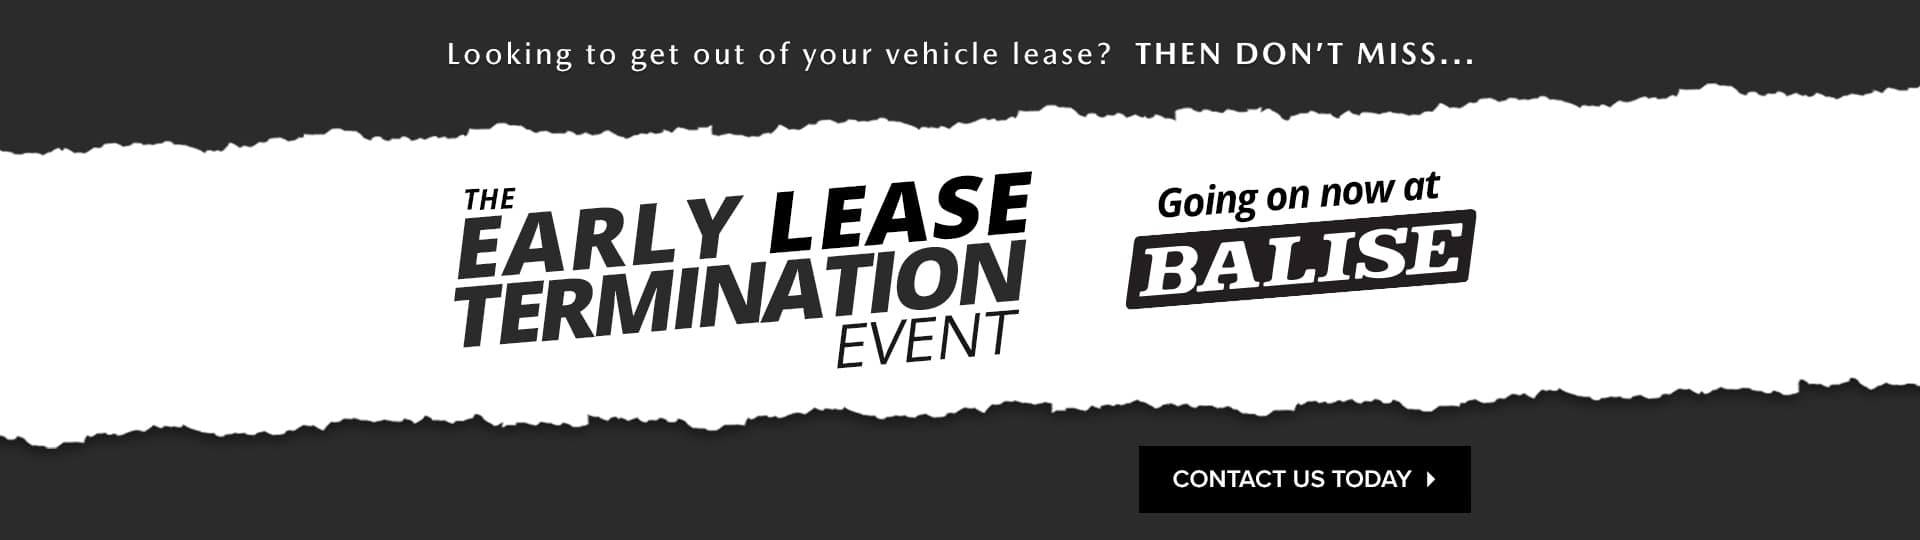 Early Lease Termination Event